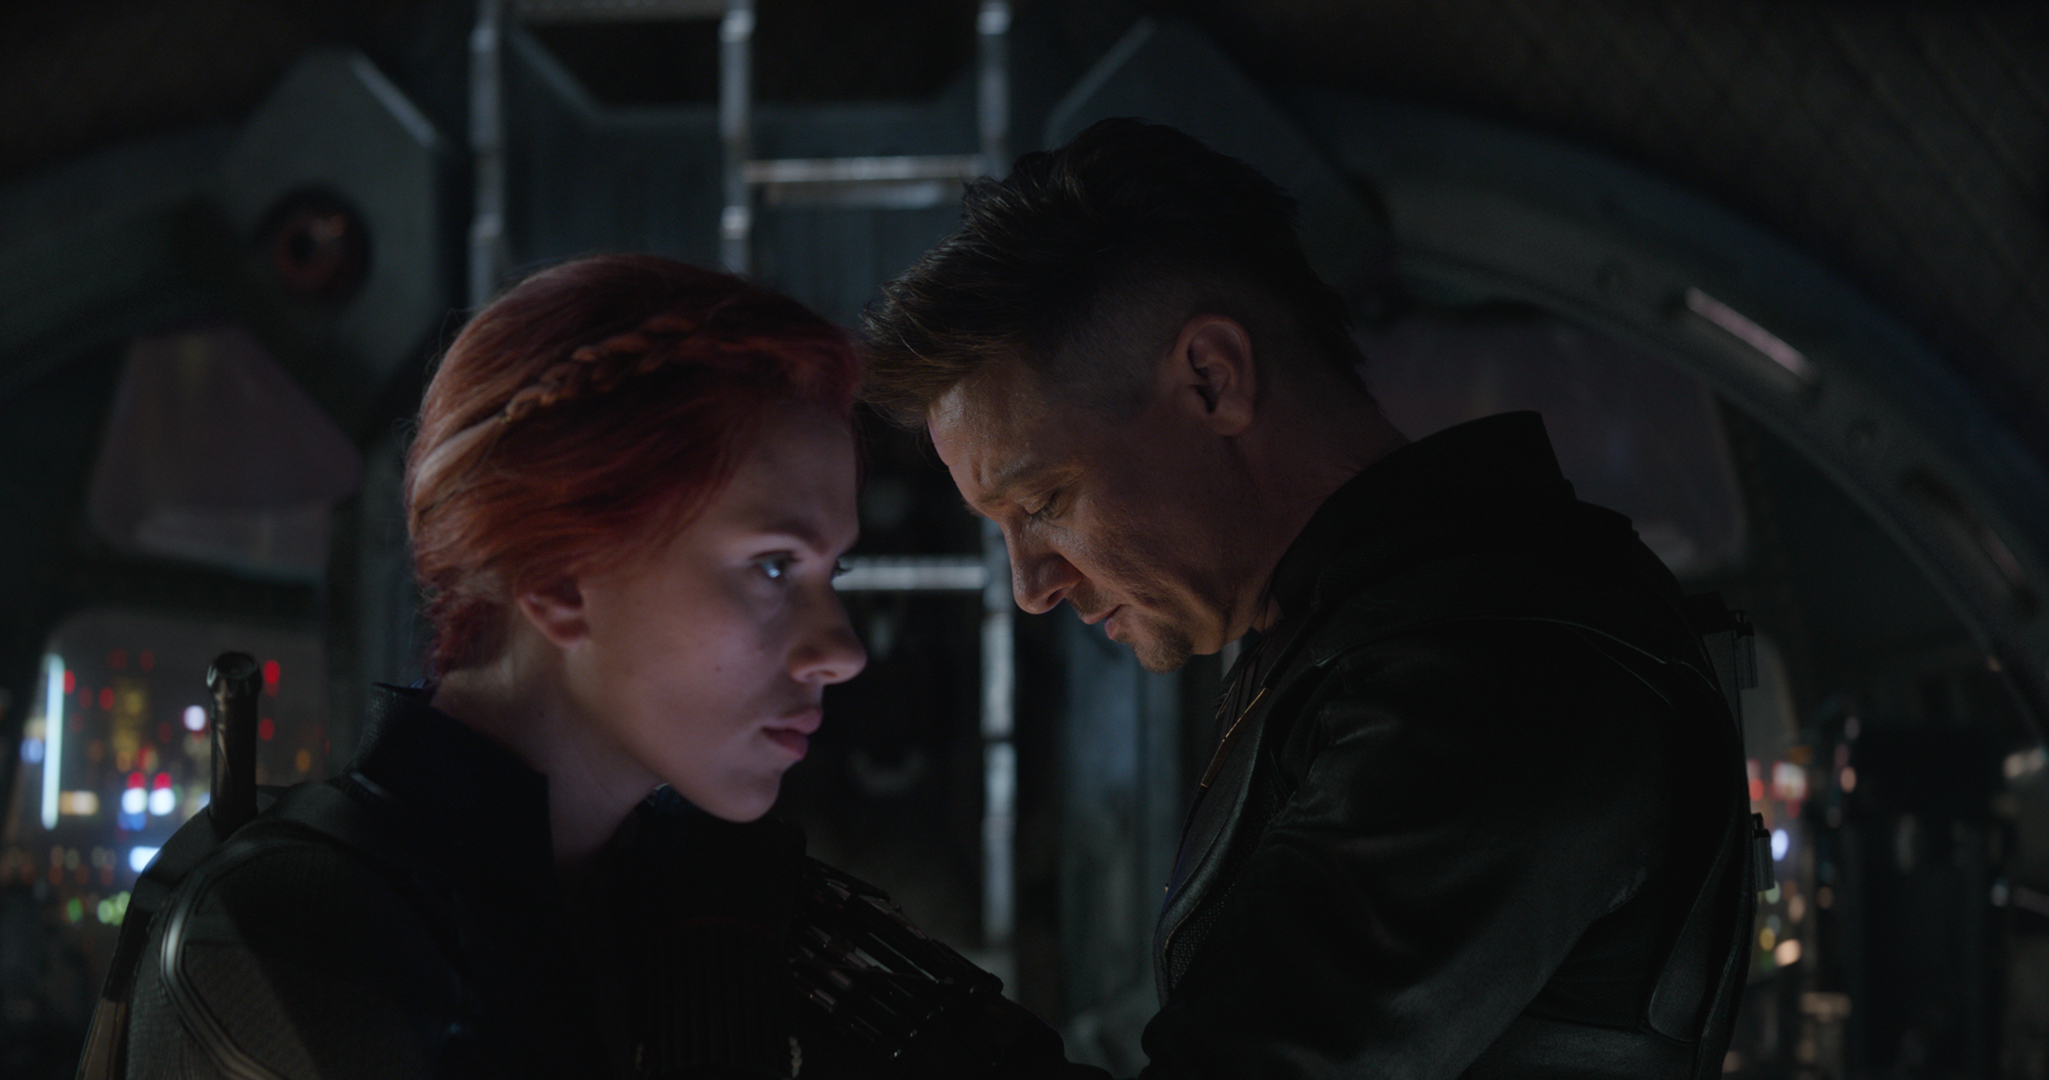 Still from 'Avengers: Endgame' featuring Black Widow (Scarlett Johansson) and Hawkeye (Jeremy Renner).